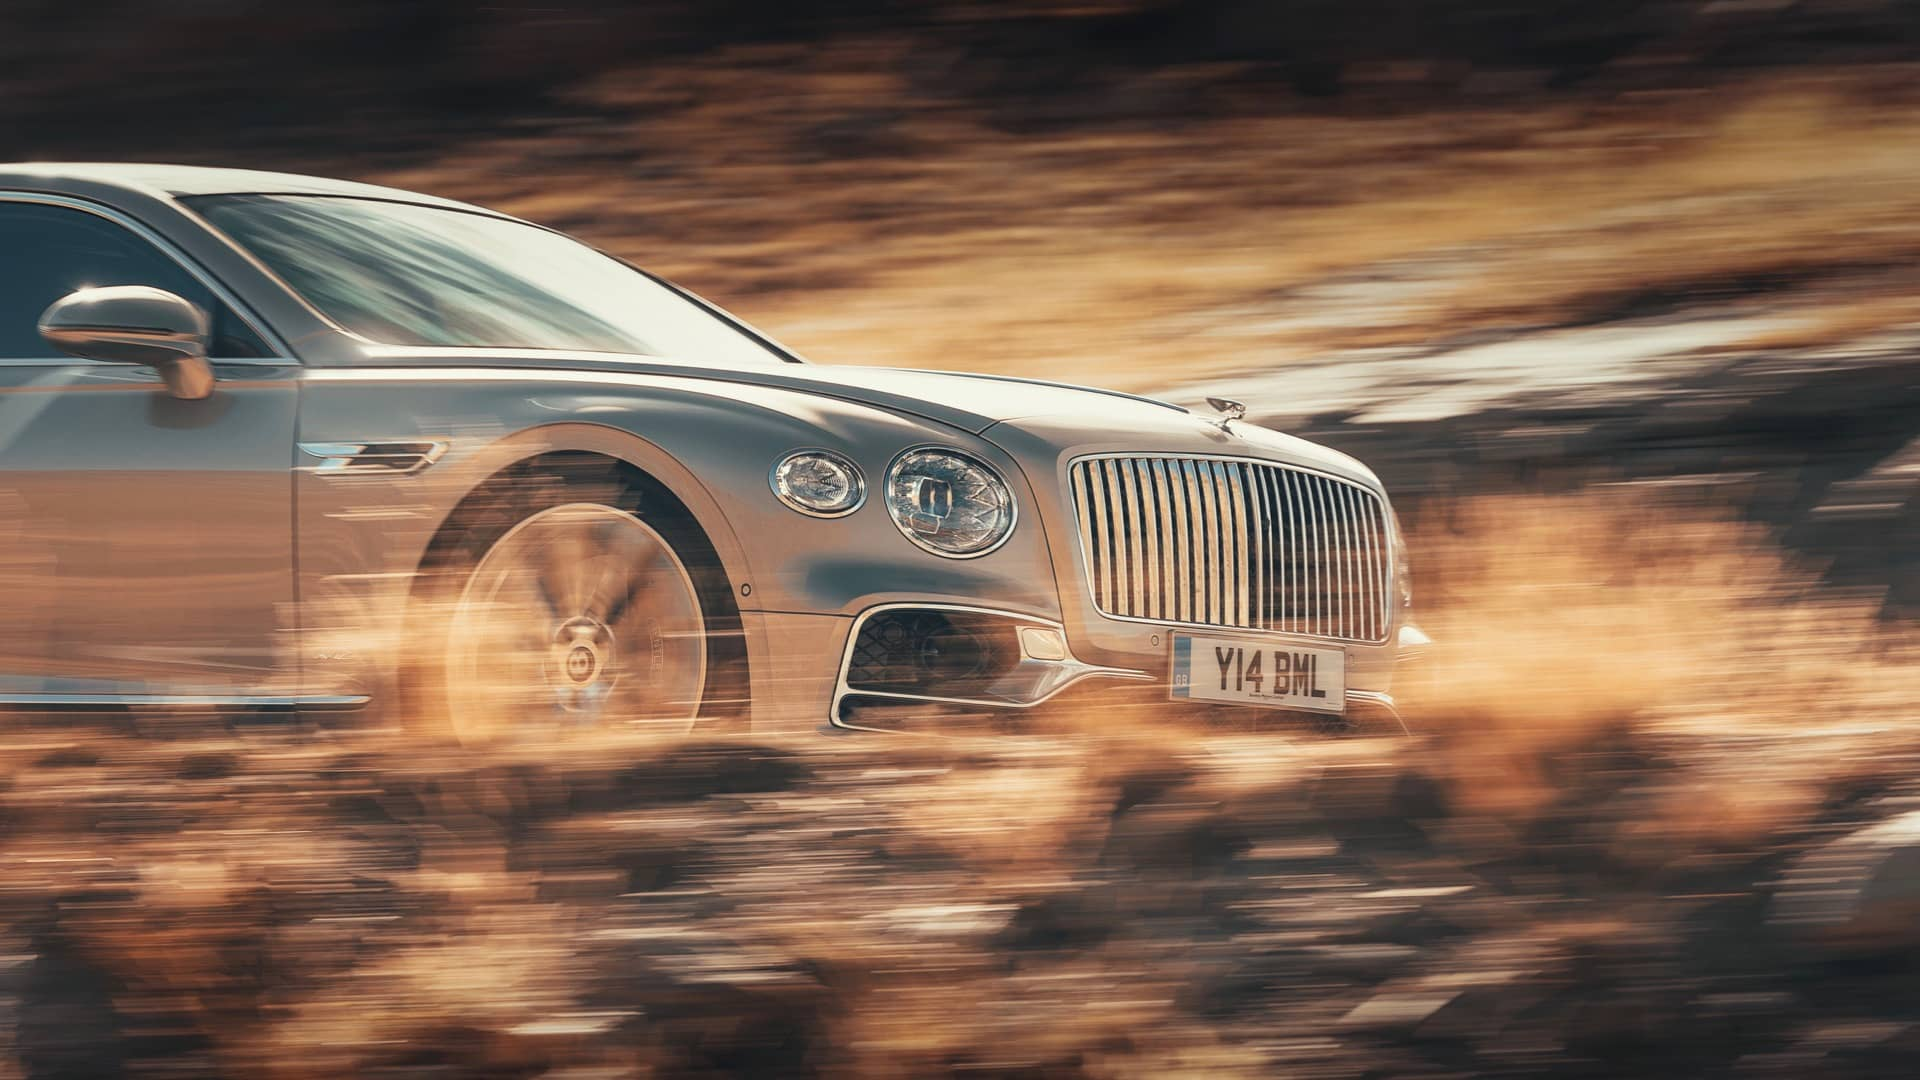 2021-bentley-flying-spur_100751306_h